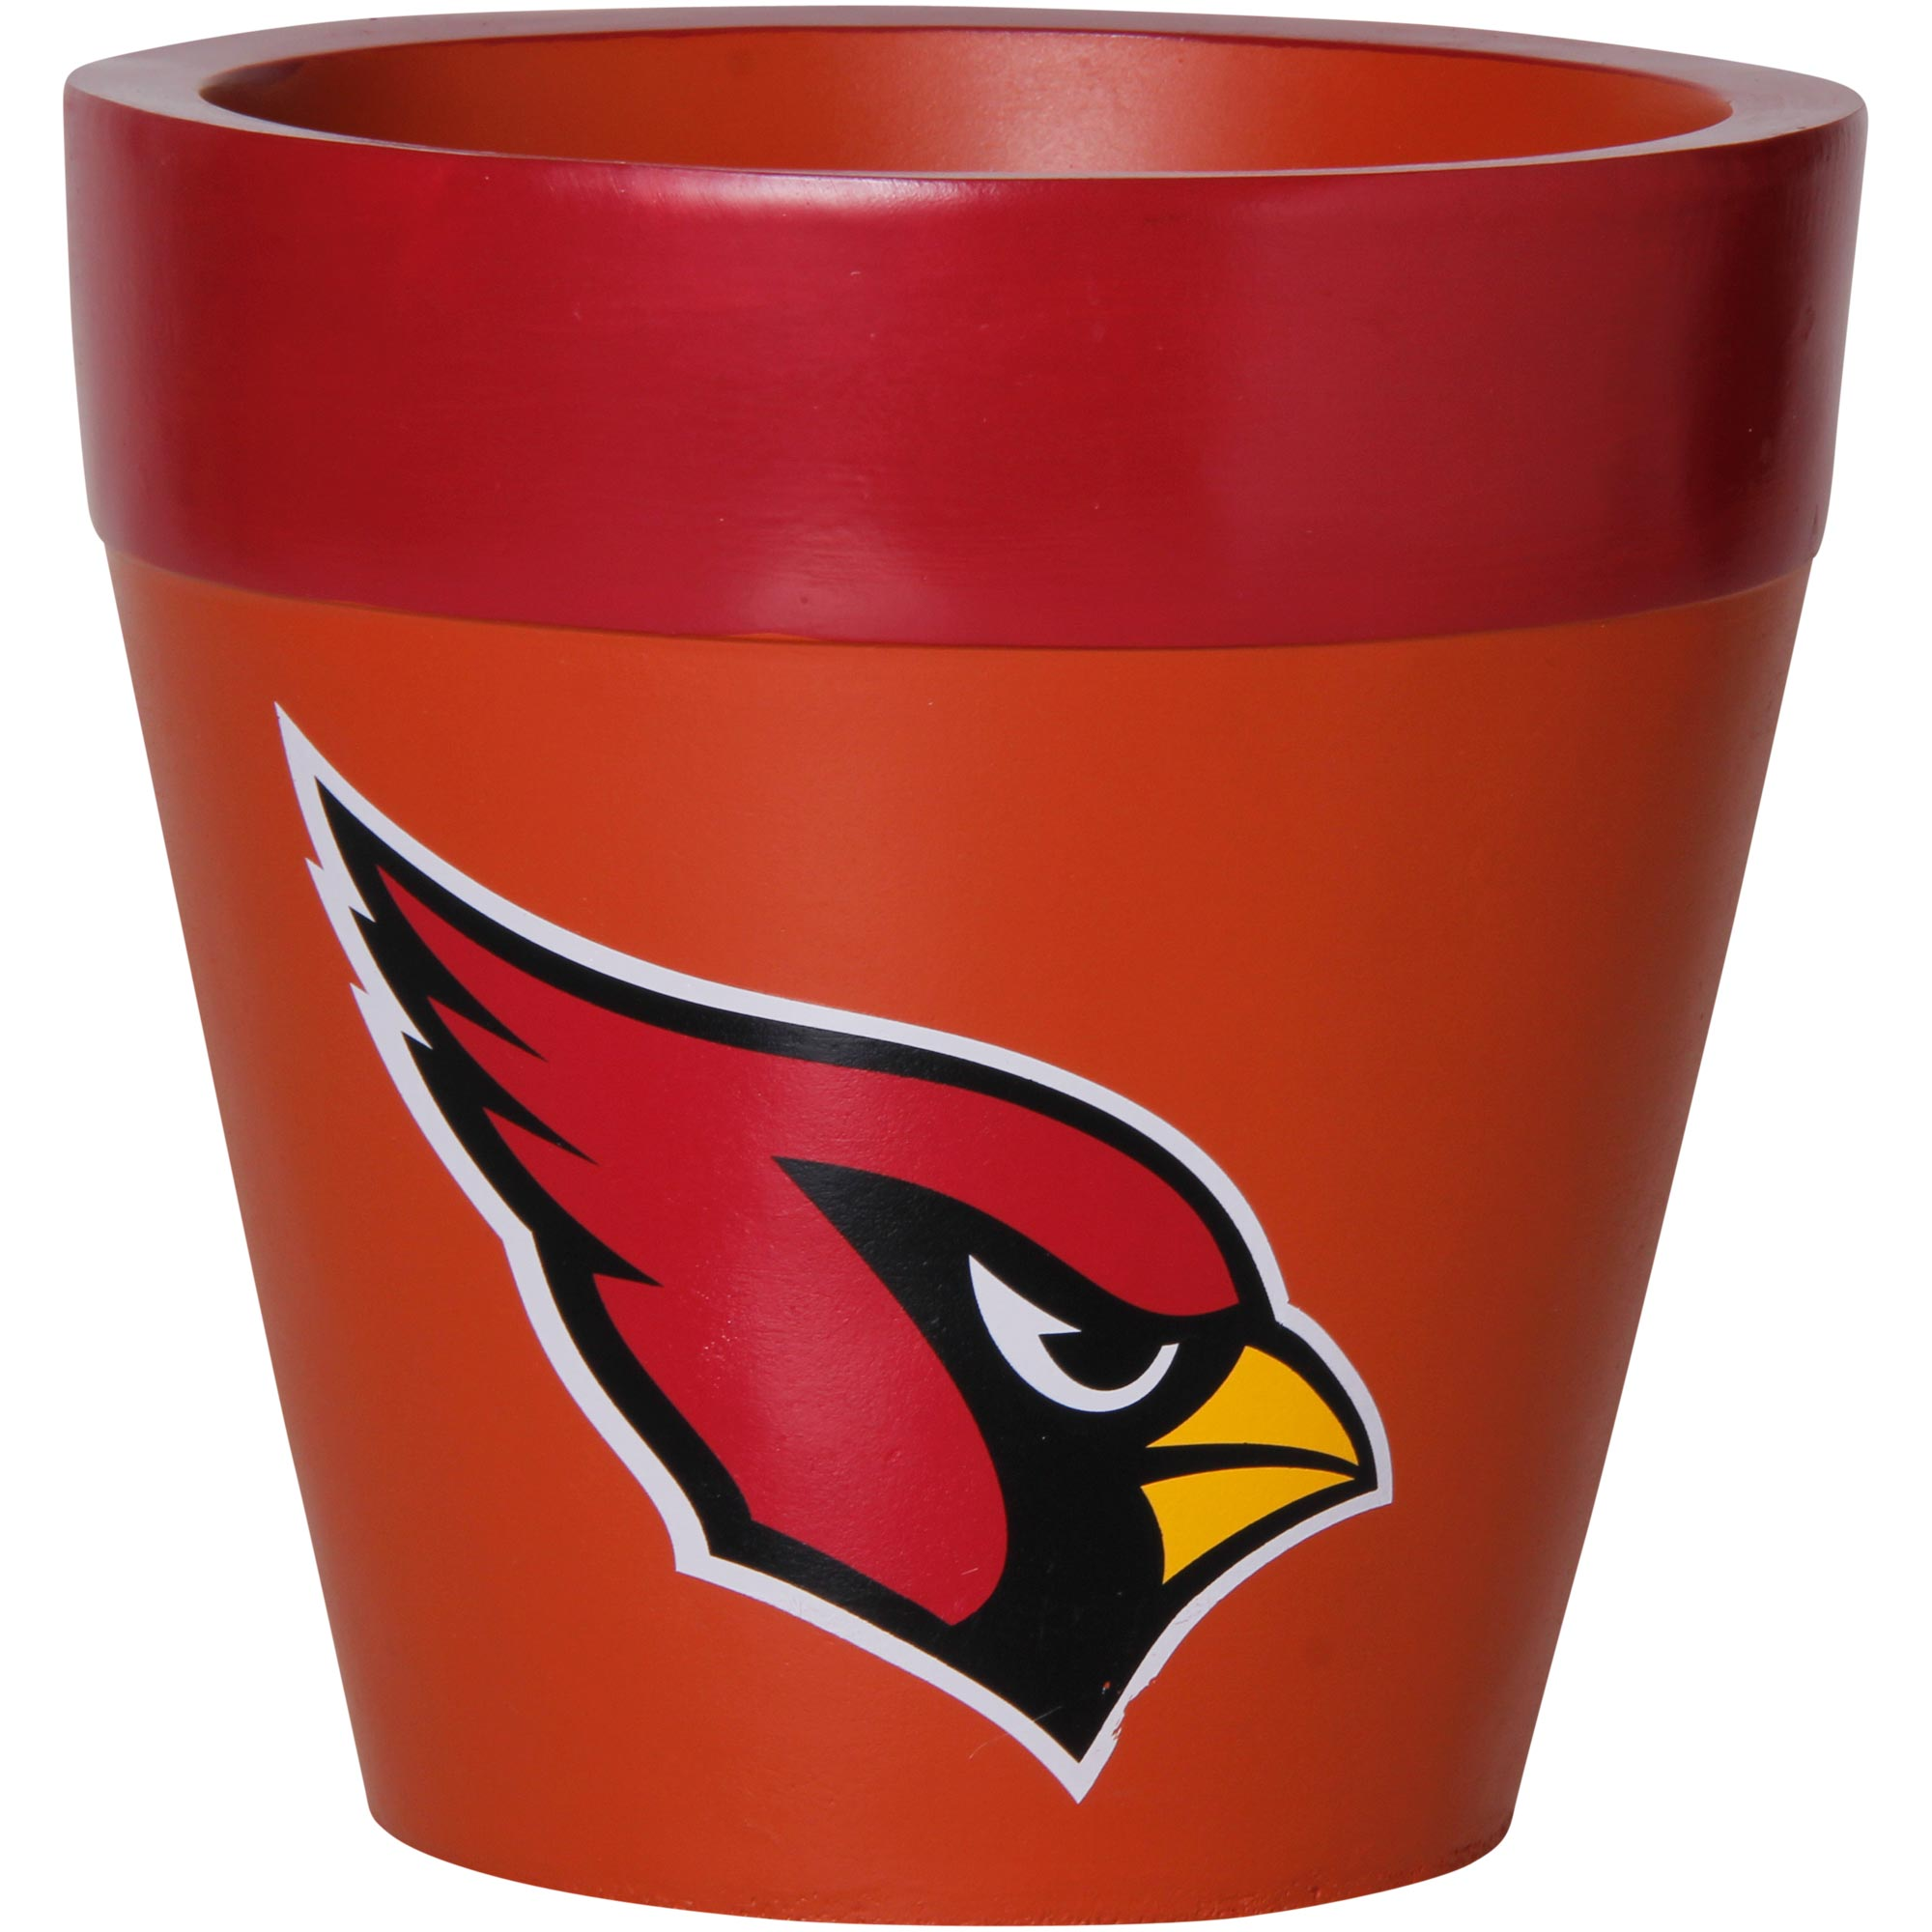 Arizona Cardinals Team Planter Flower Pot